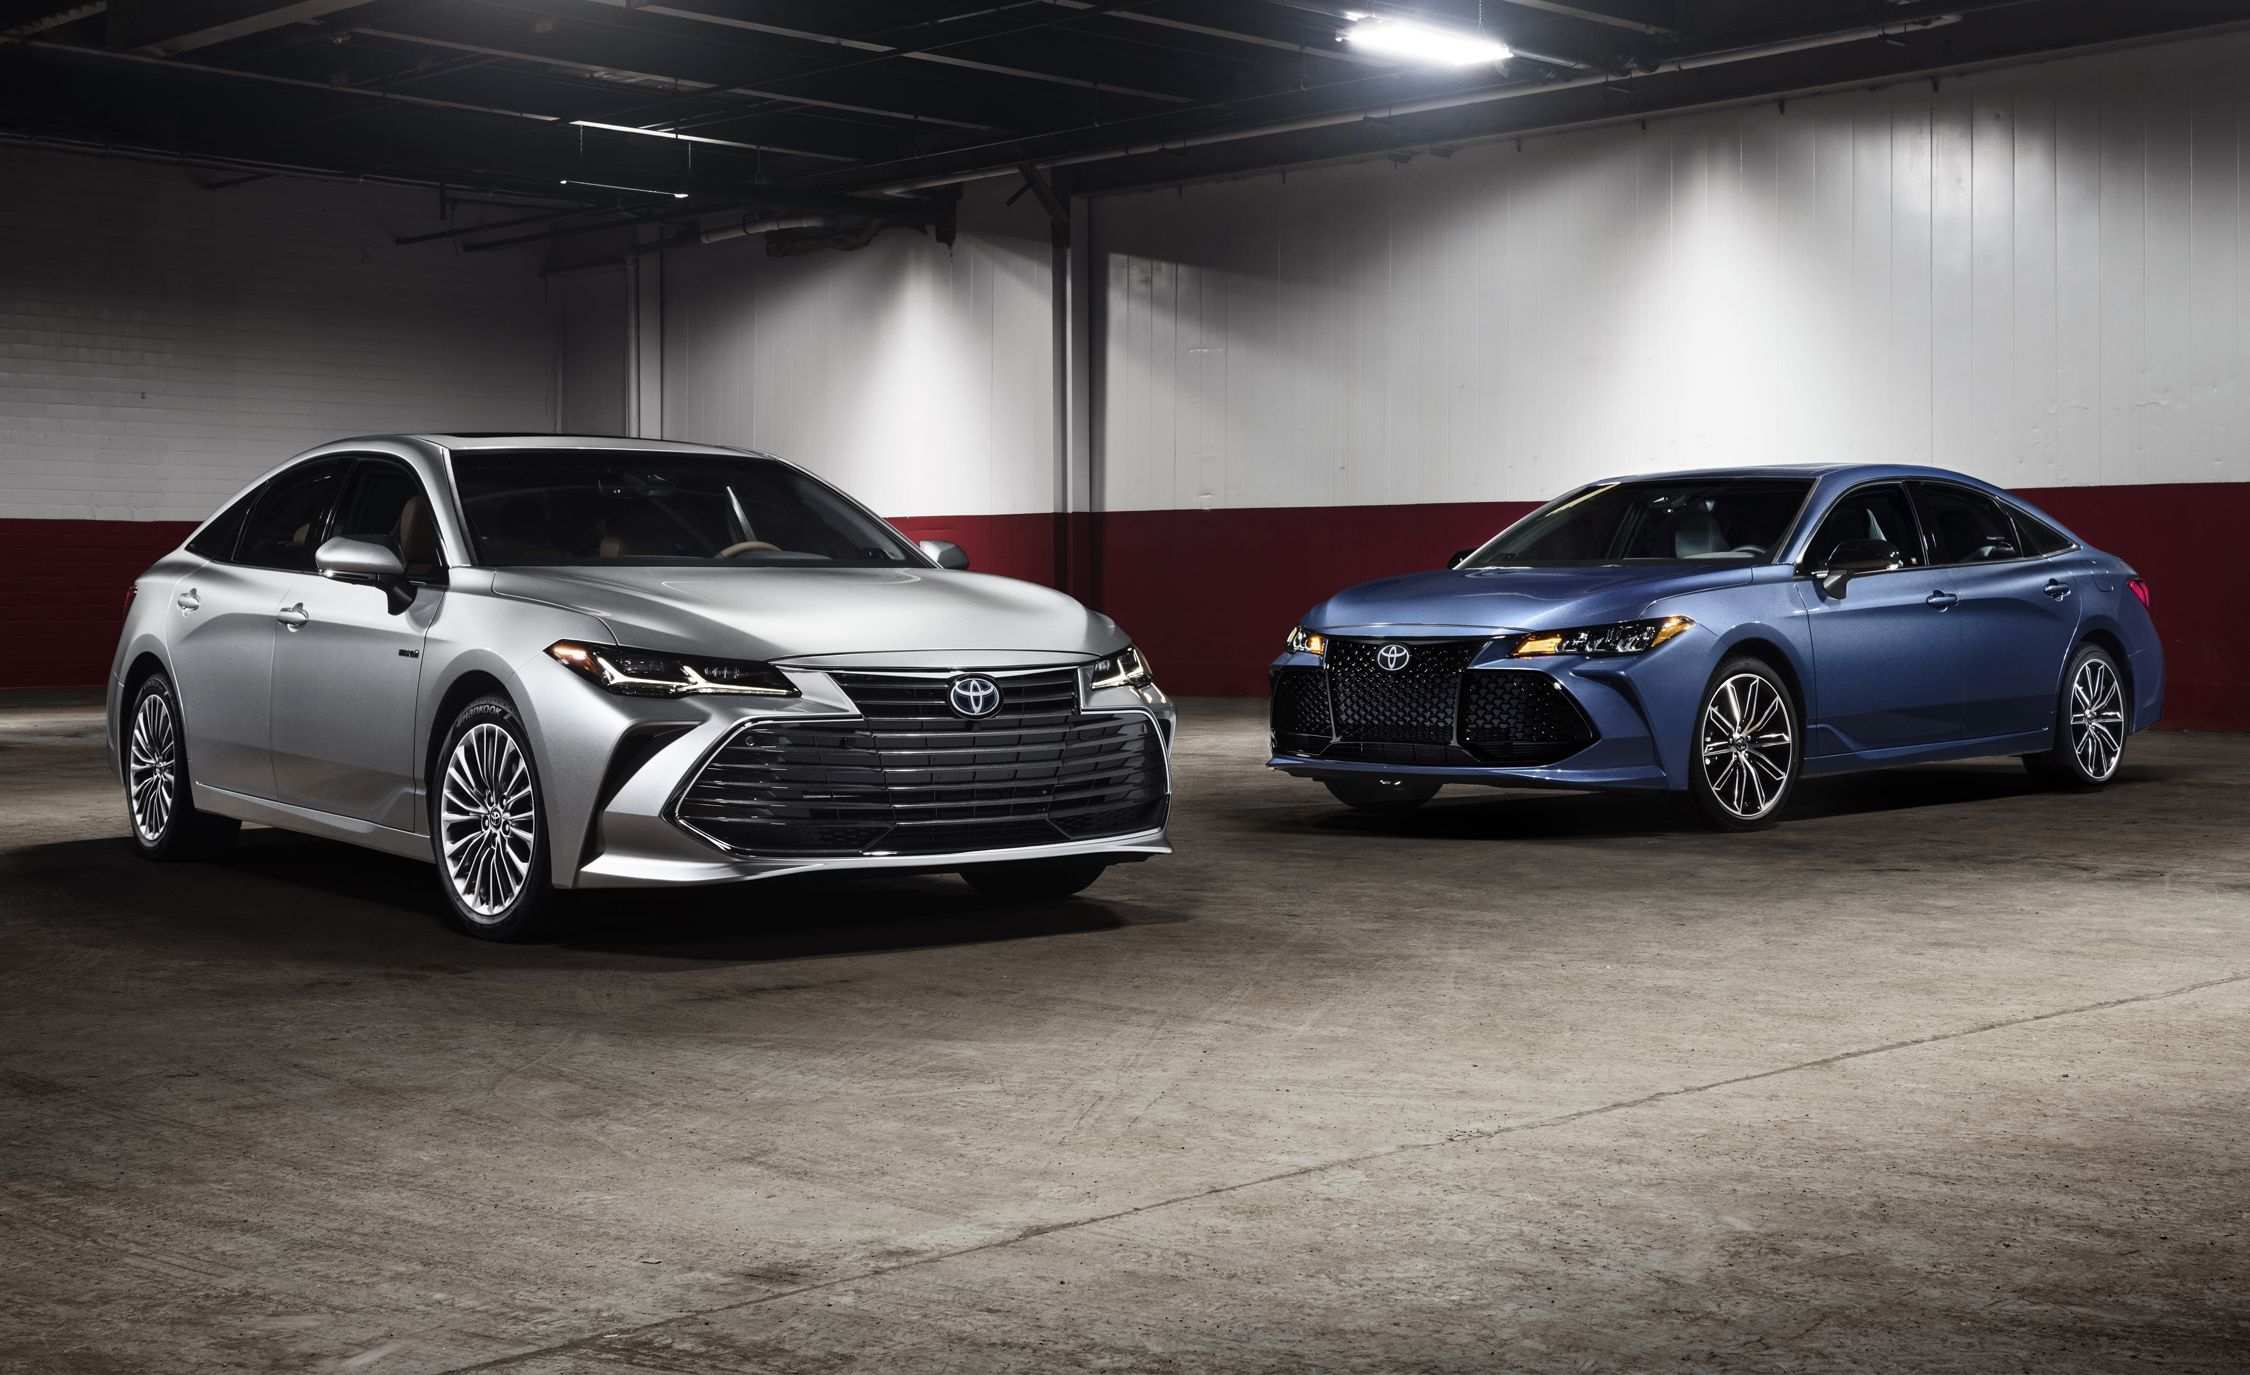 22 Great The Lexus Brochure 2019 First Drive Release Date by The Lexus Brochure 2019 First Drive